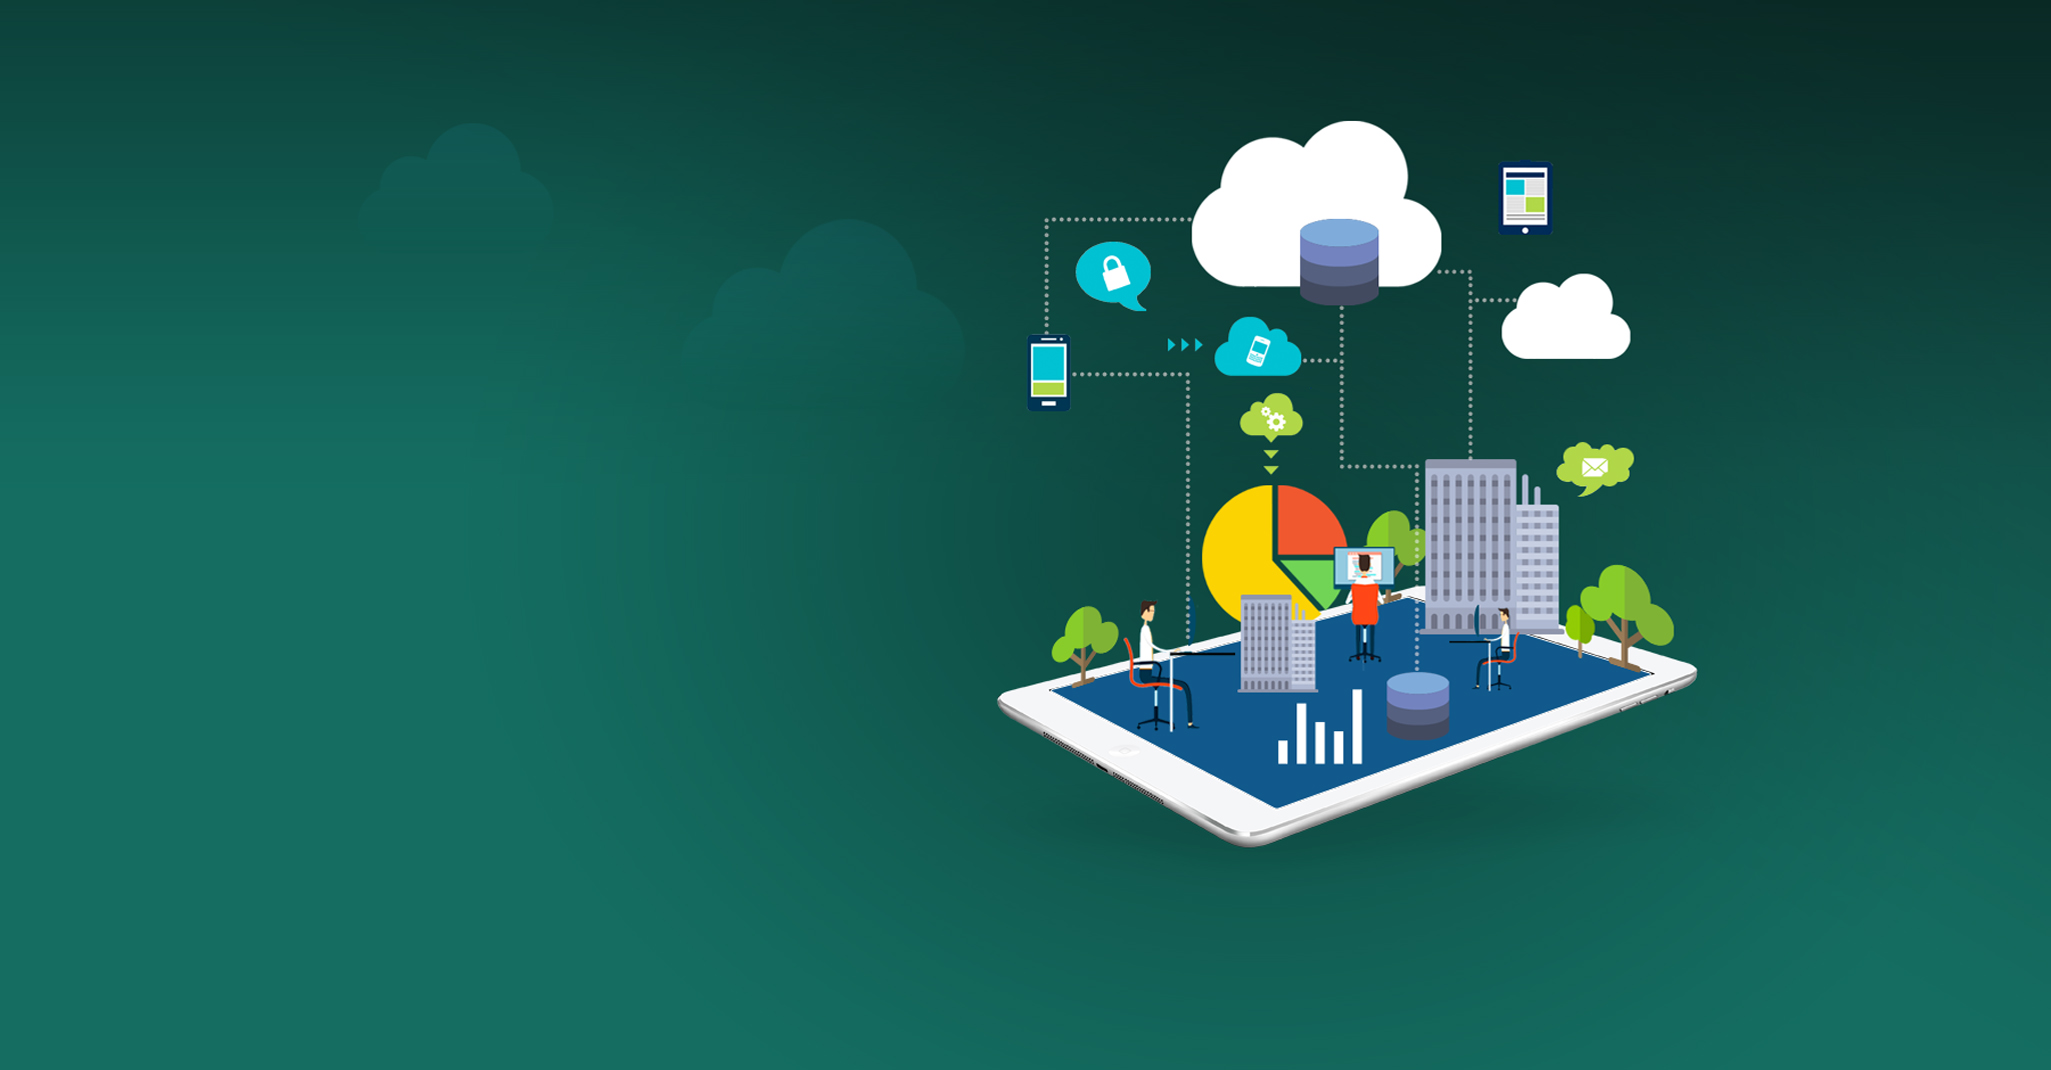 green background with trees, buildings, charts and people on top of a tablet connected to clouds and devices in the sky